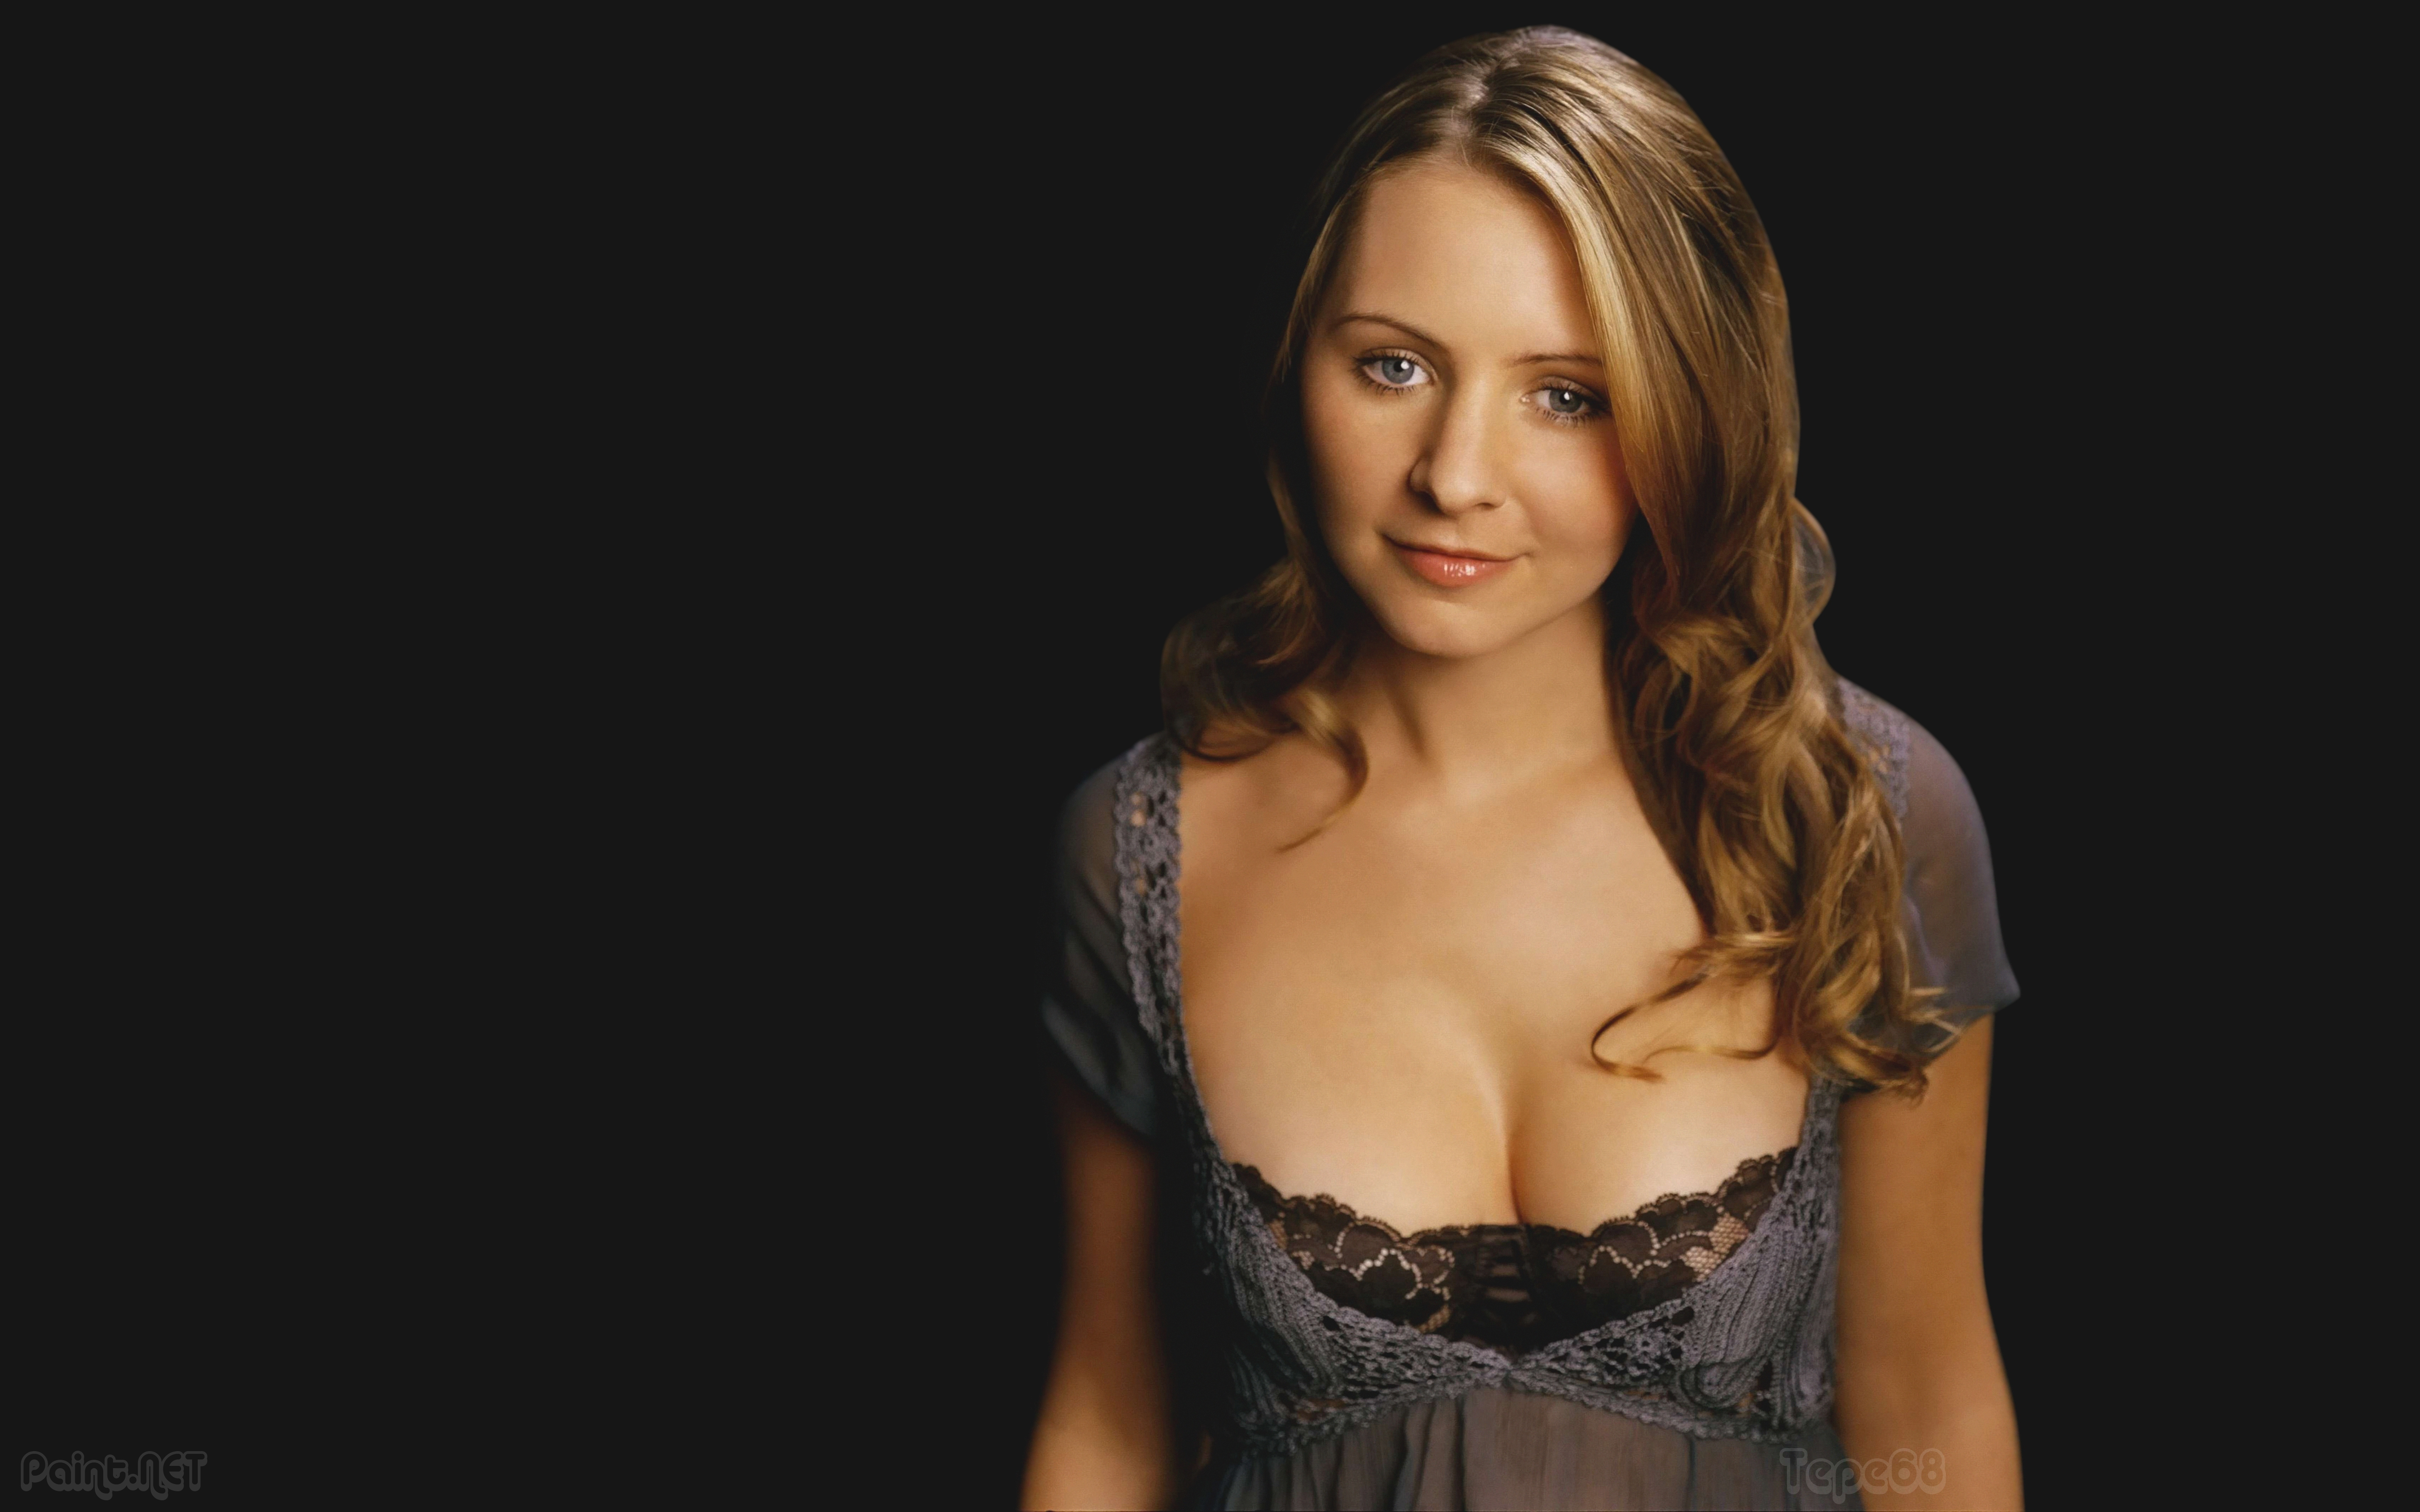 6400x4000 - Beverley Mitchell Wallpapers 5